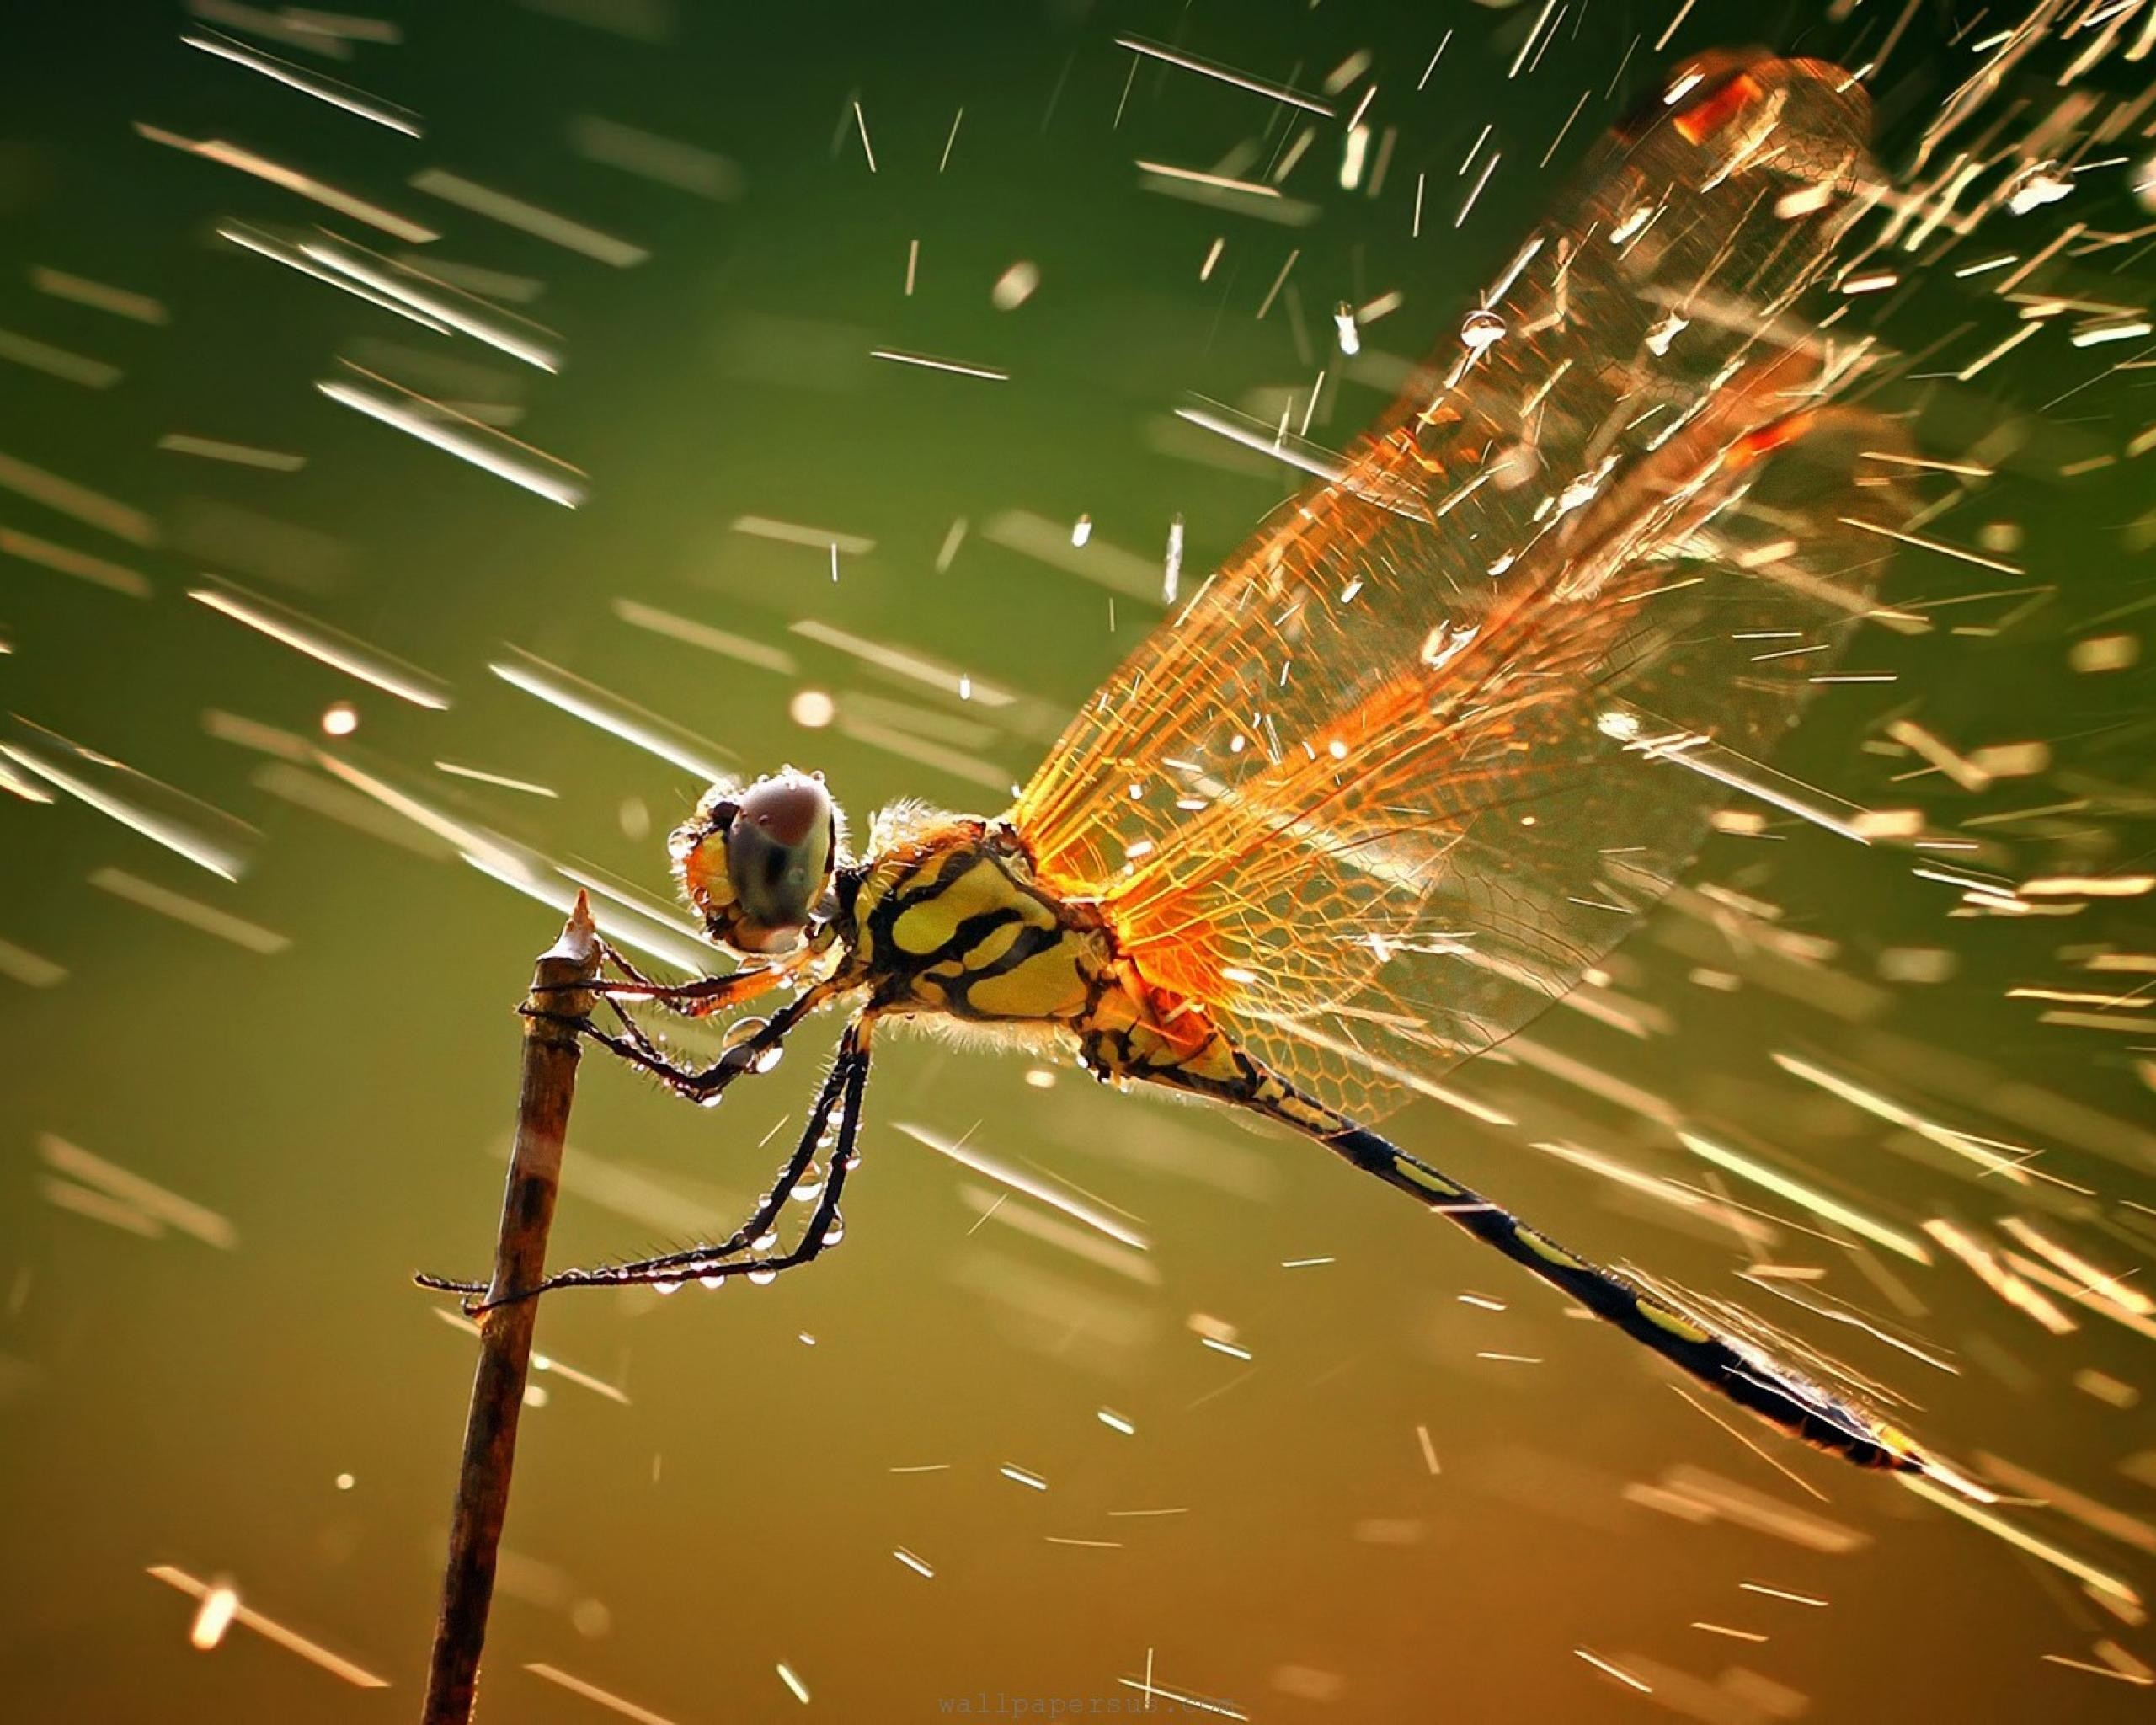 Dragonfly Desktop Wallpapers FREE on Latorocom 2560x2048